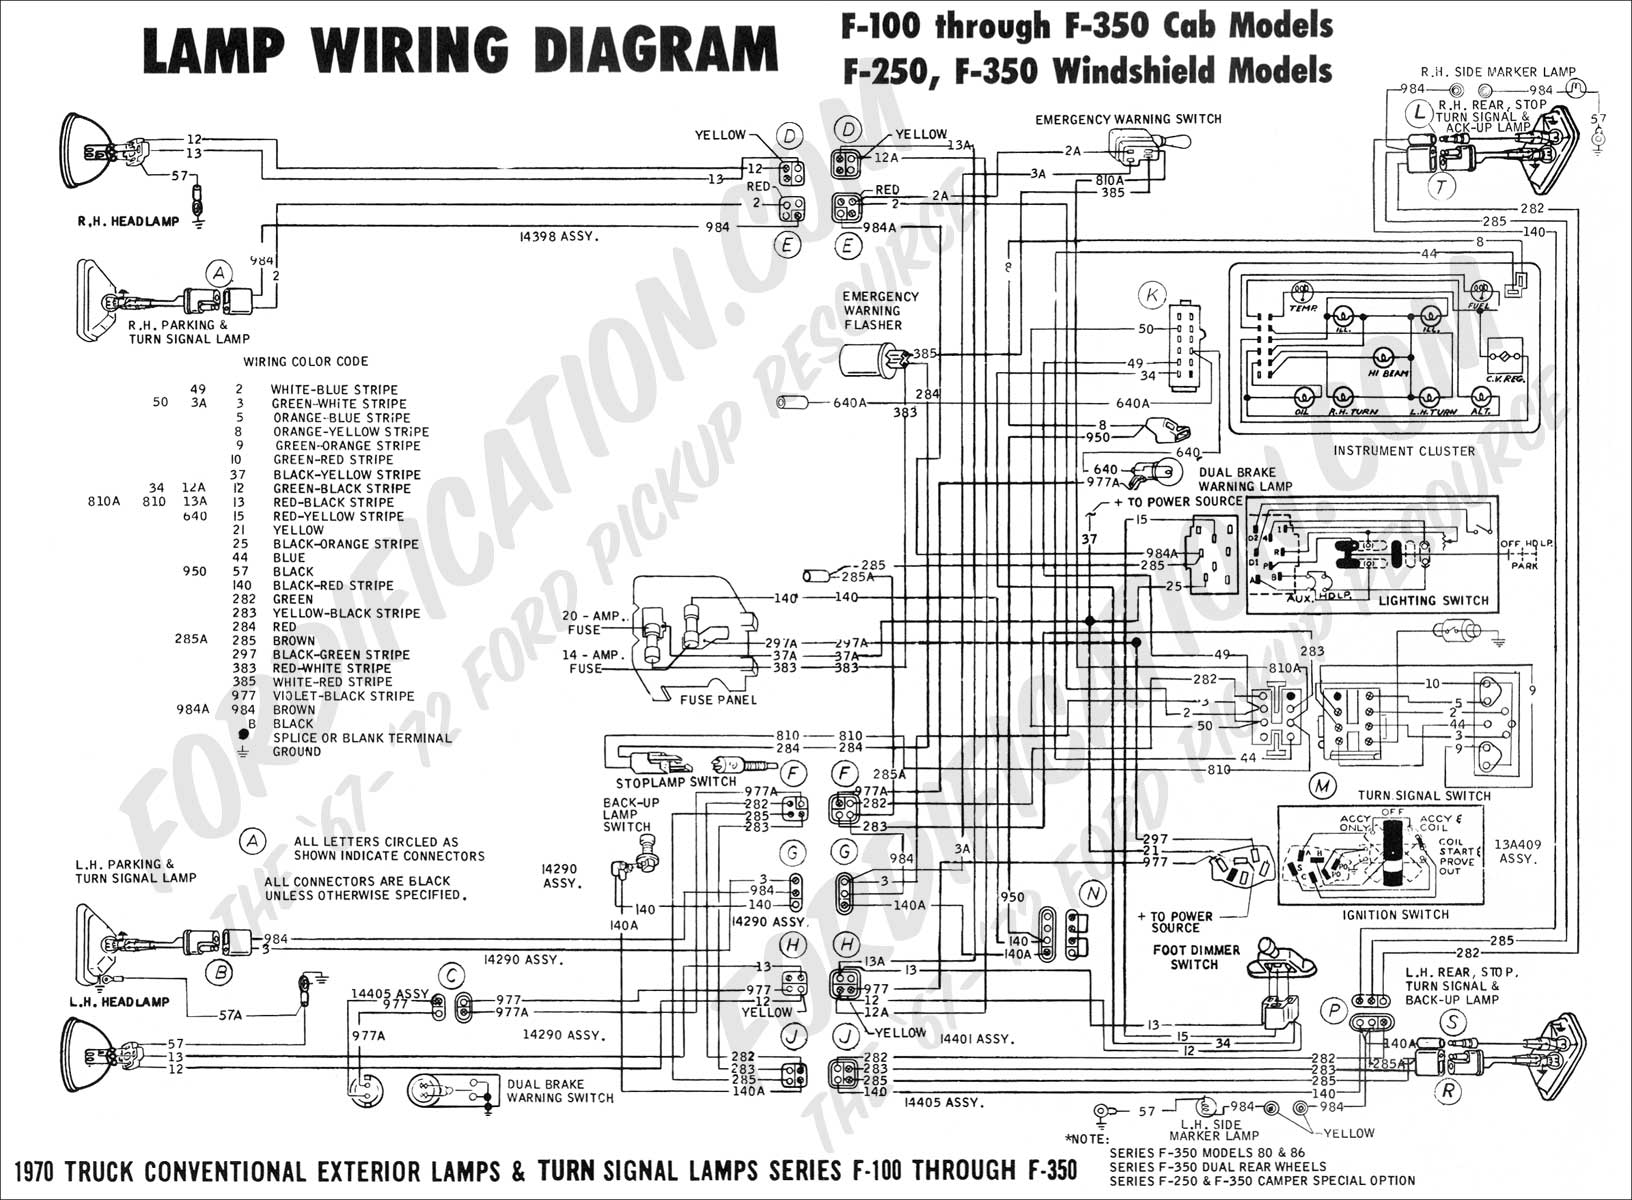 95 Ford F 250 Engine Diagram Guide And Troubleshooting Of Wiring 1995 Xl 4 9 2003 Third Level Rh 15 Jacobwinterstein Com Diesel 460